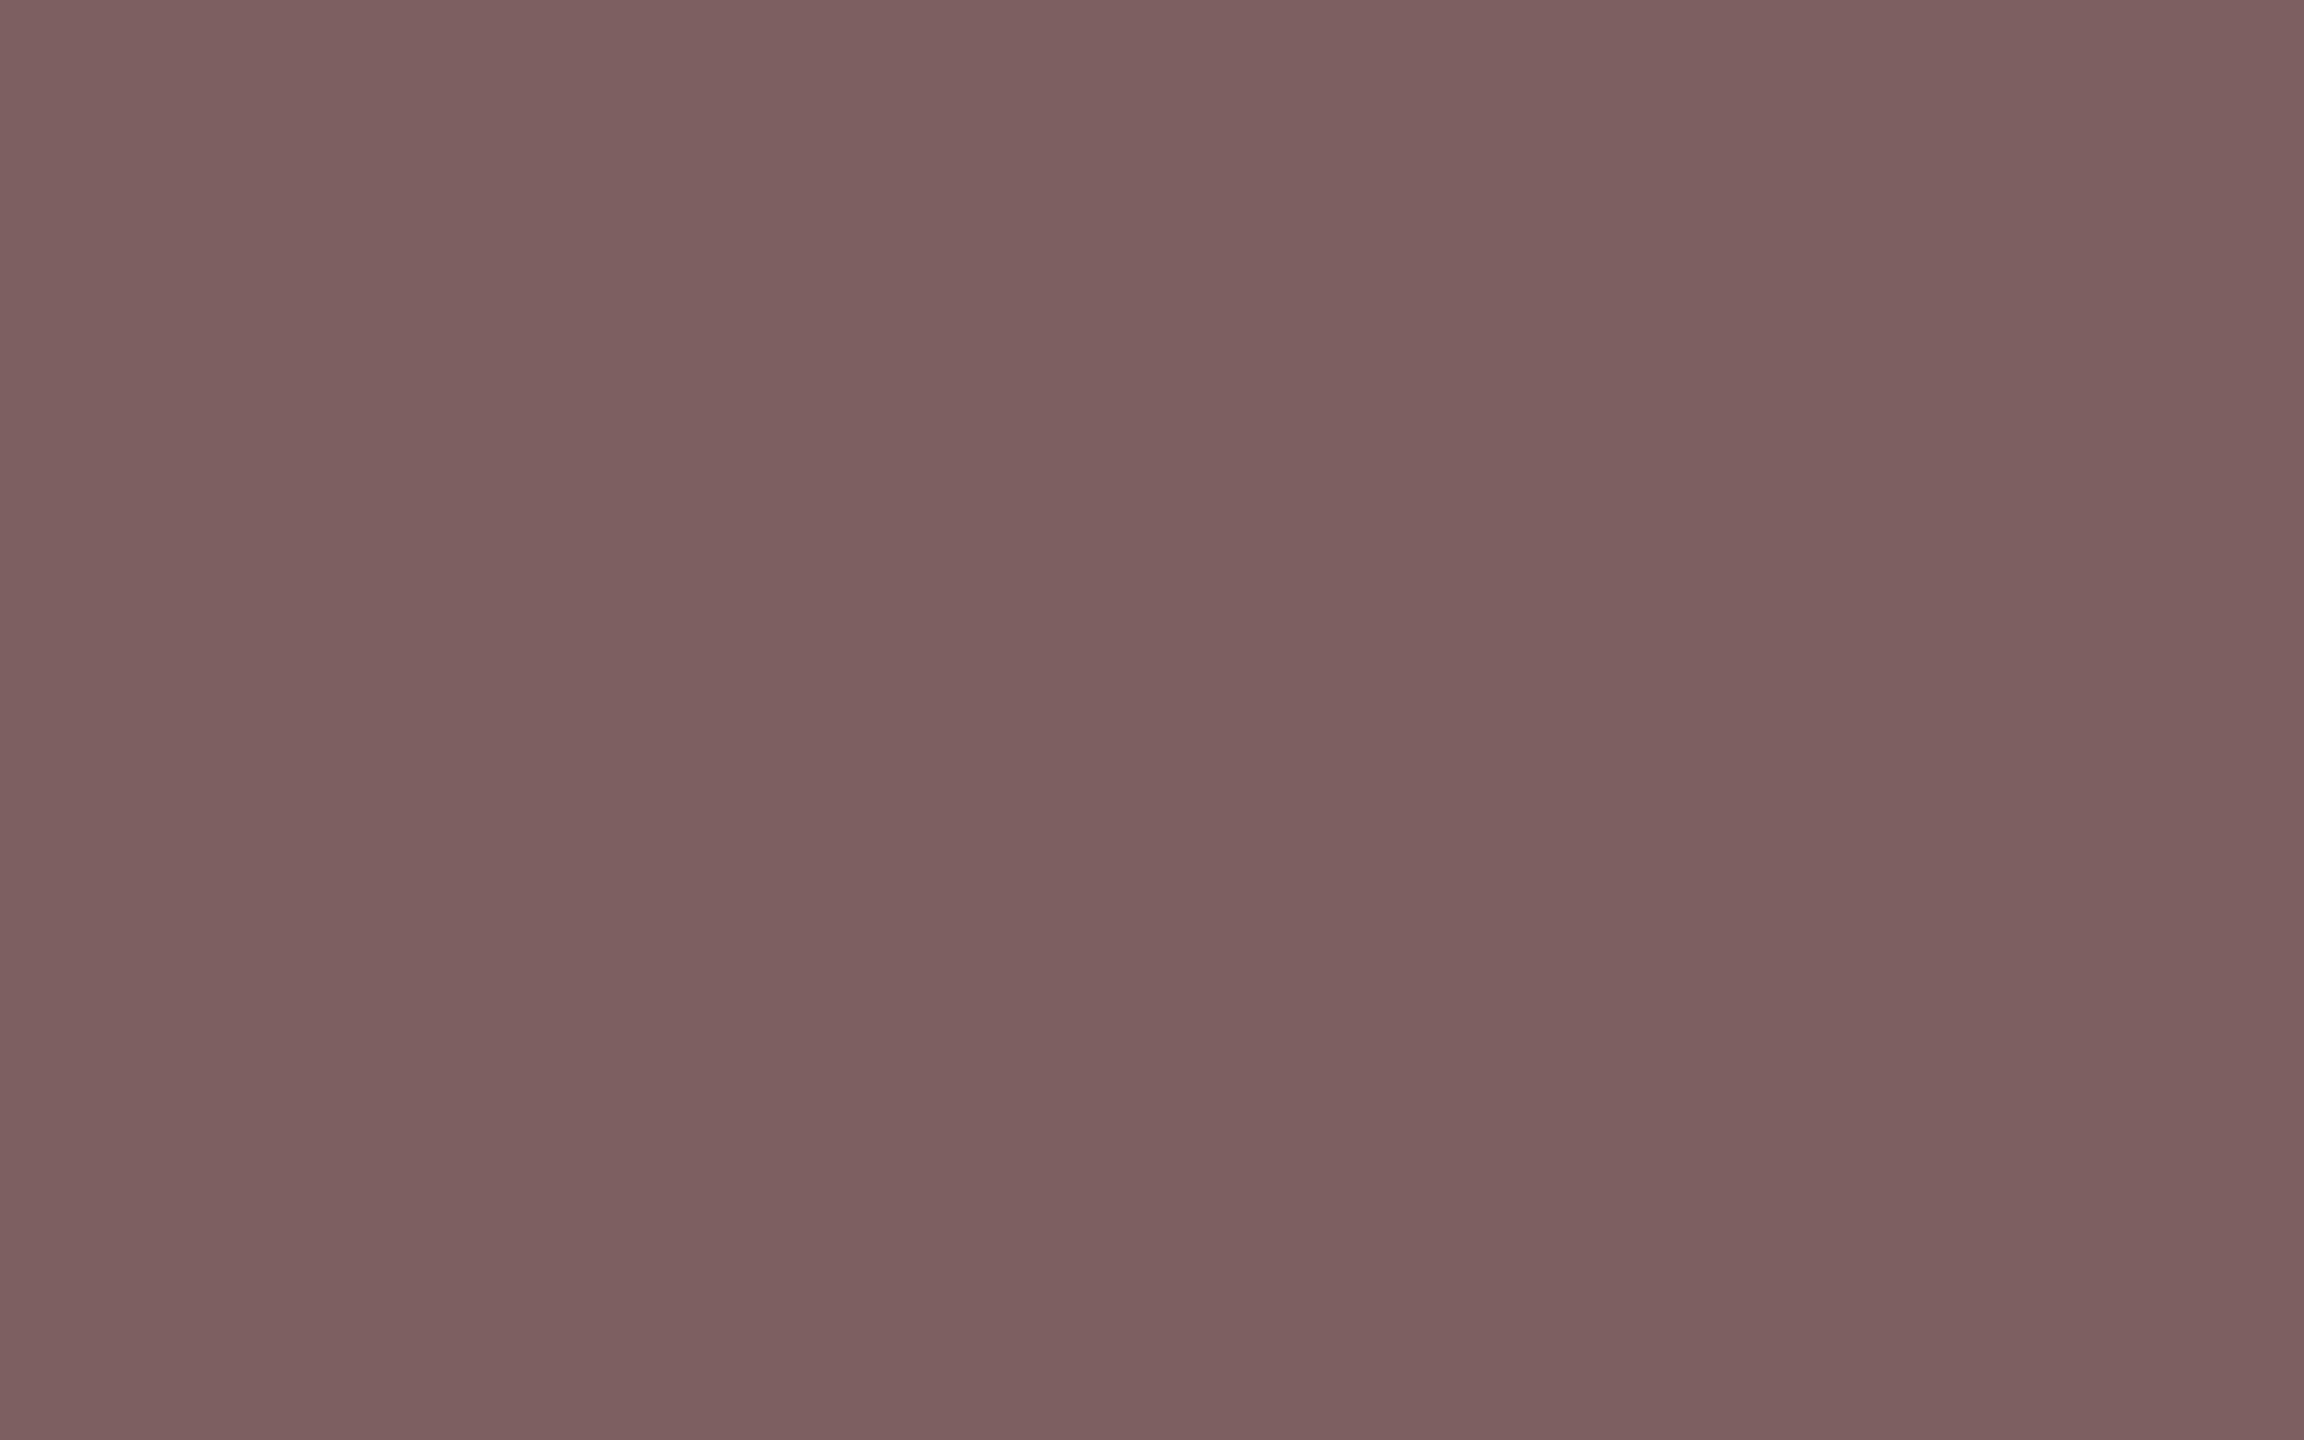 2304x1440 Deep Taupe Solid Color Background